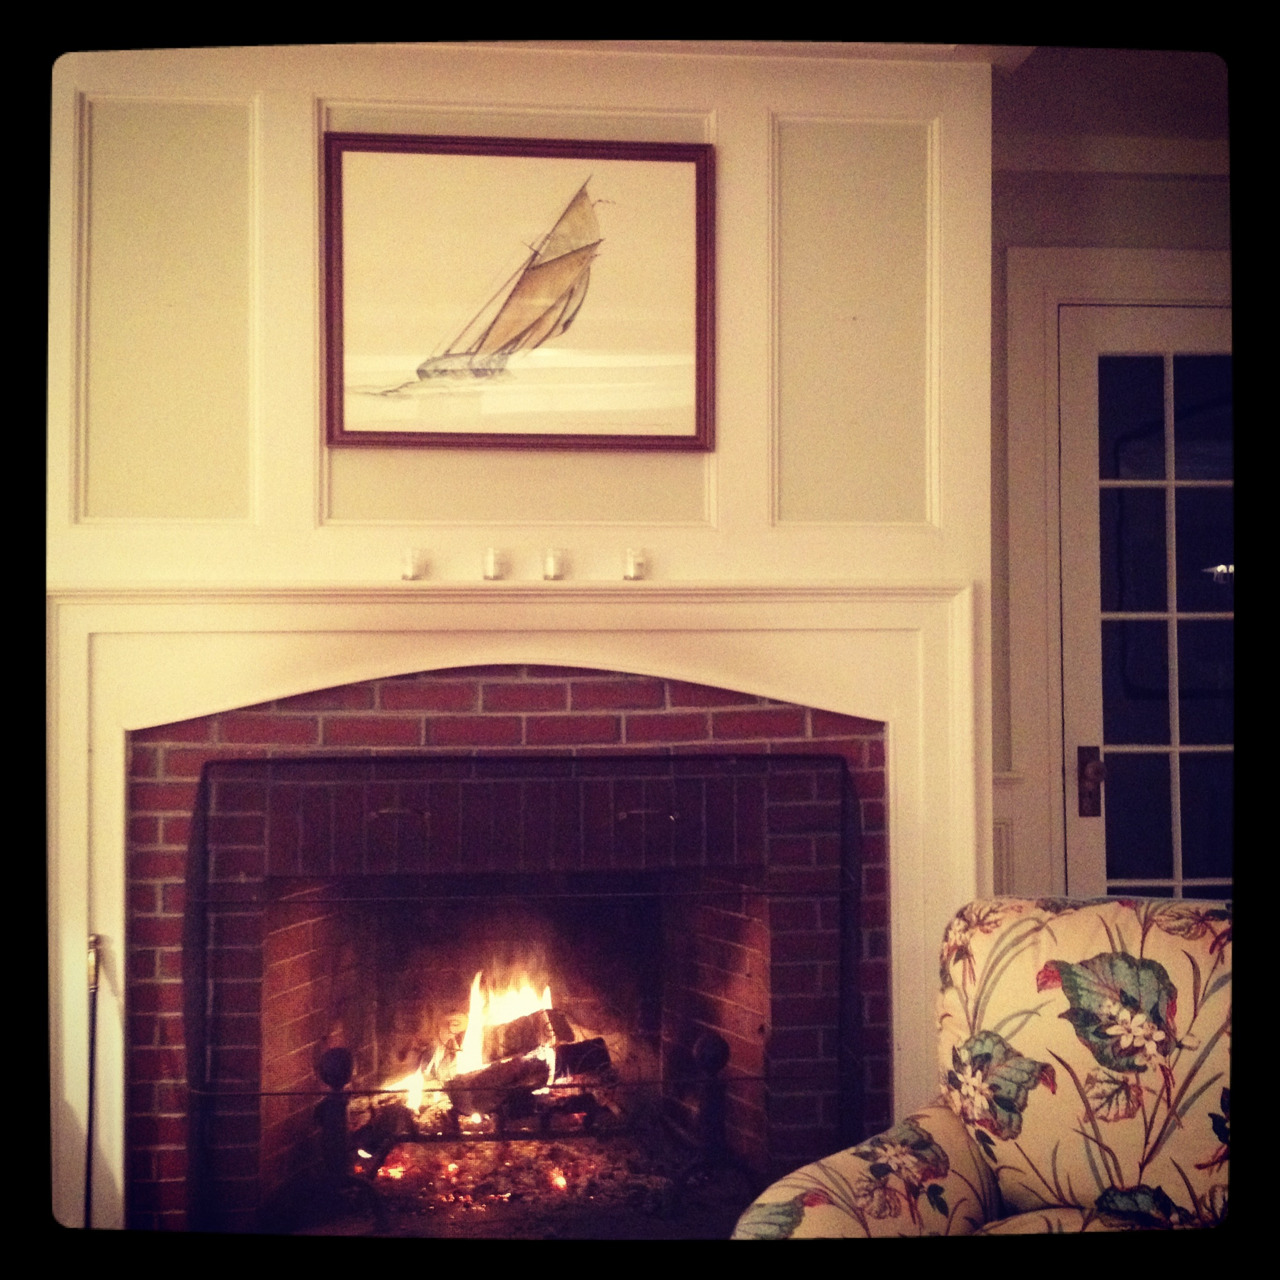 A rainy day and night in Maine, and a warm fire courtesy of my future husband.